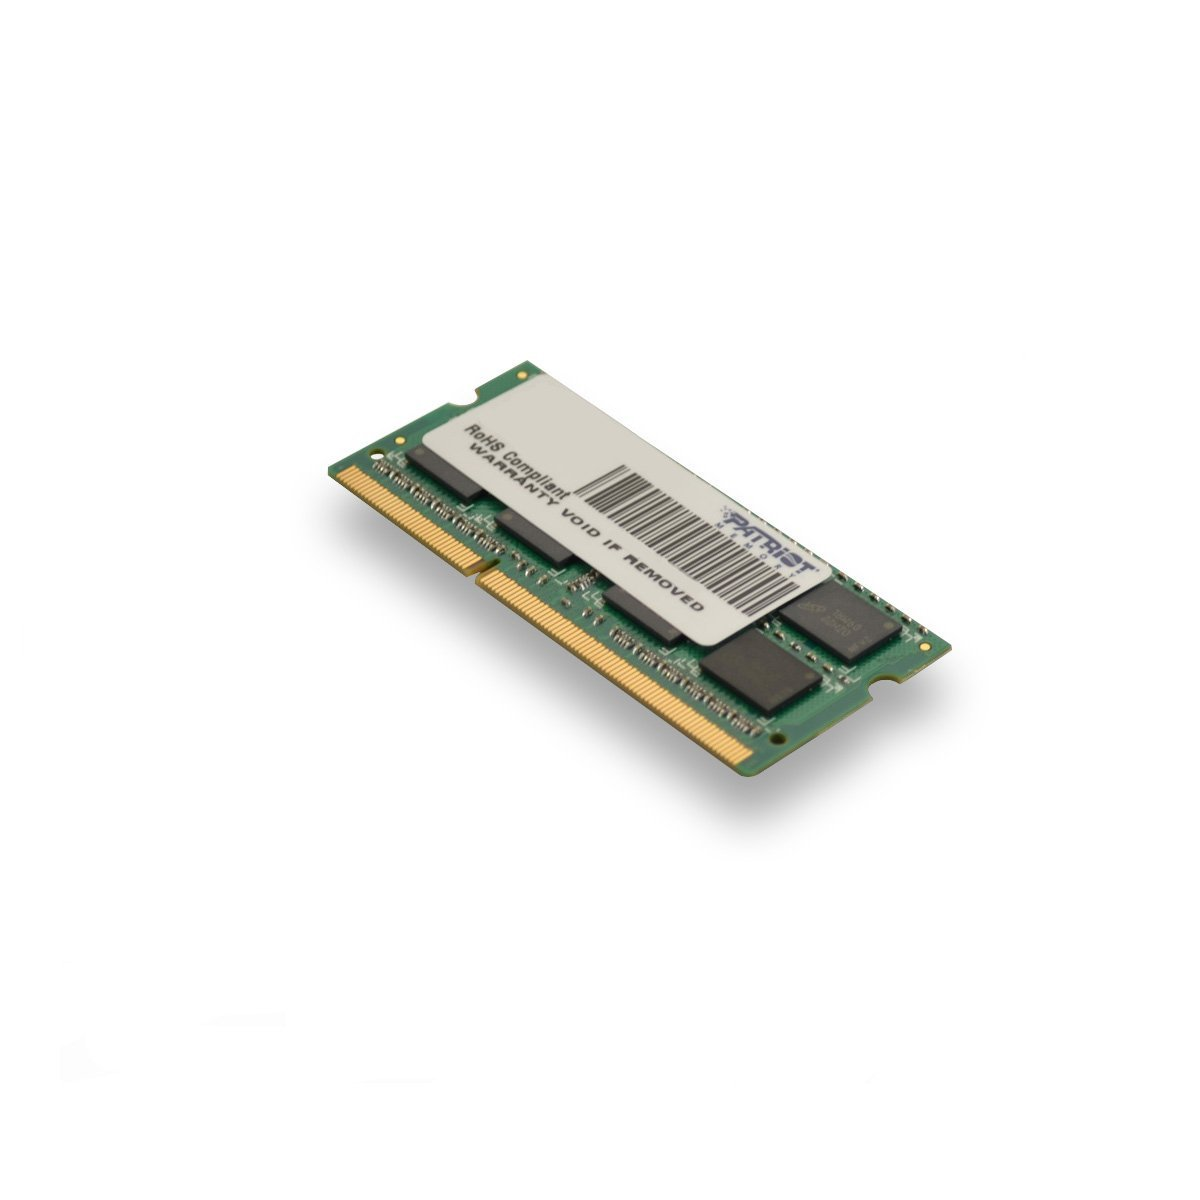 Memoria Ram 4gb Patriot Signature Pc3-10600 (1333 Mhz) Ddr3 Sodimm Psd34g13332s